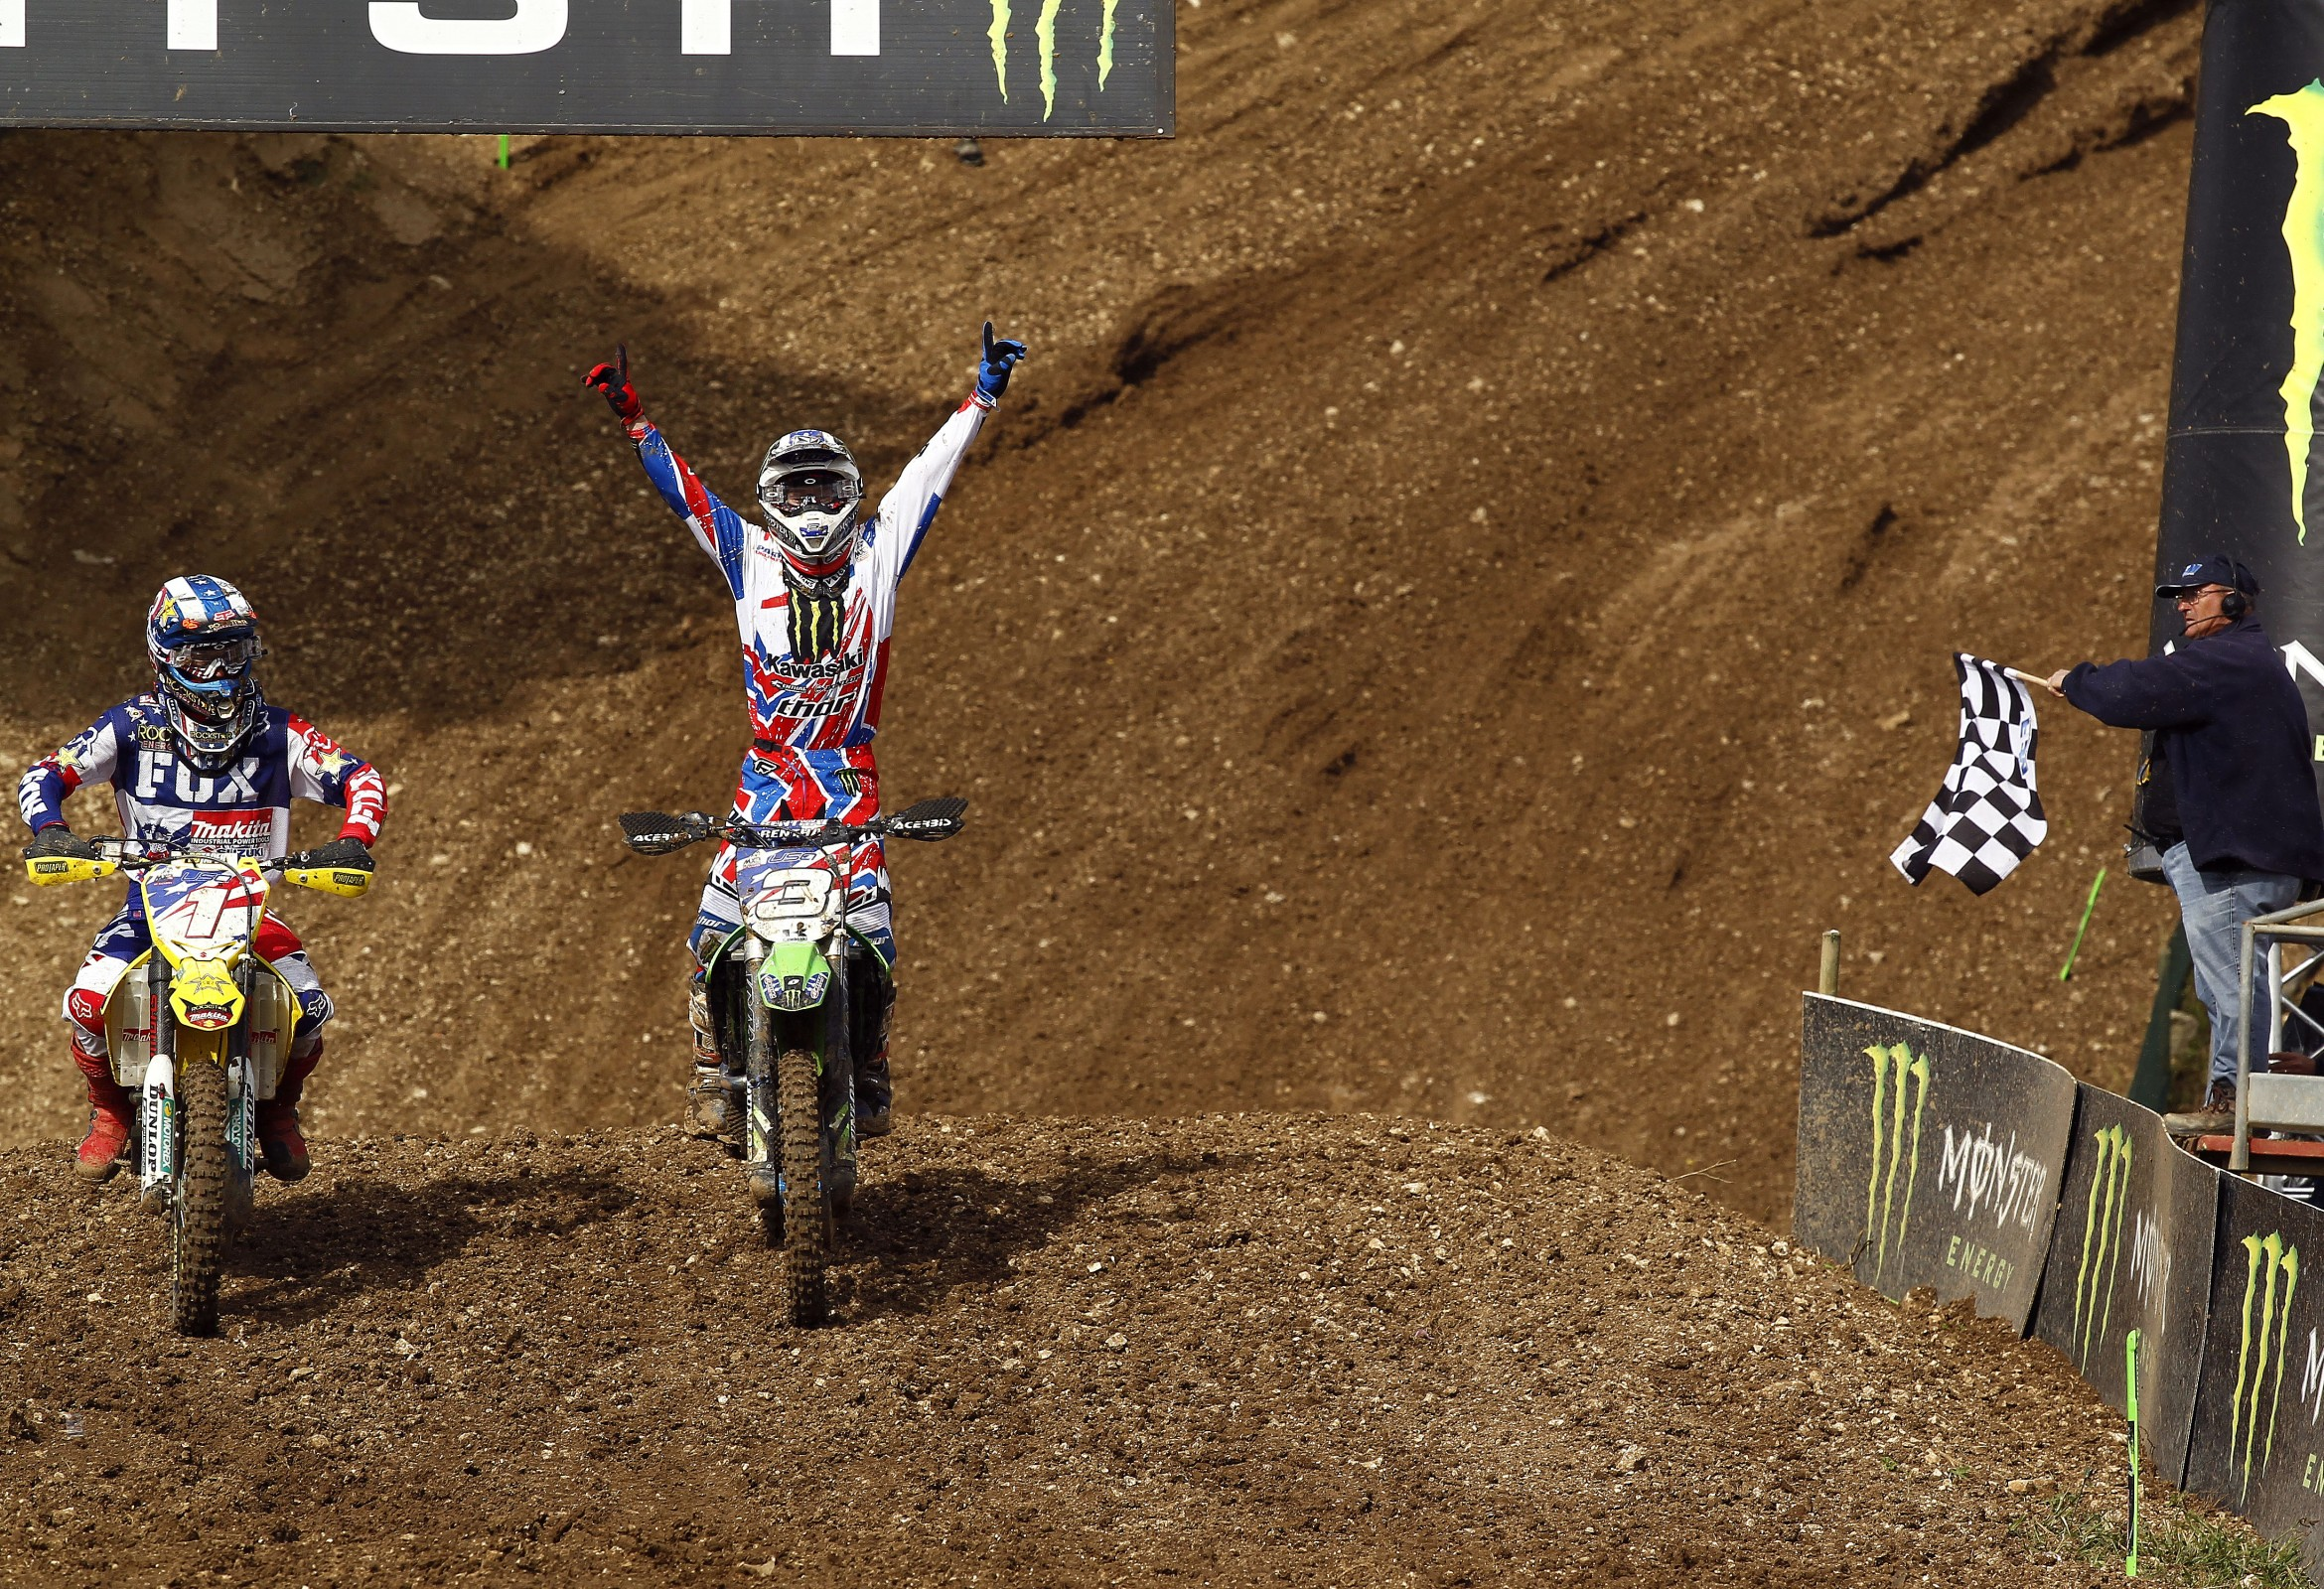 Look! Dungey and Villopoto on the same team. And winning!